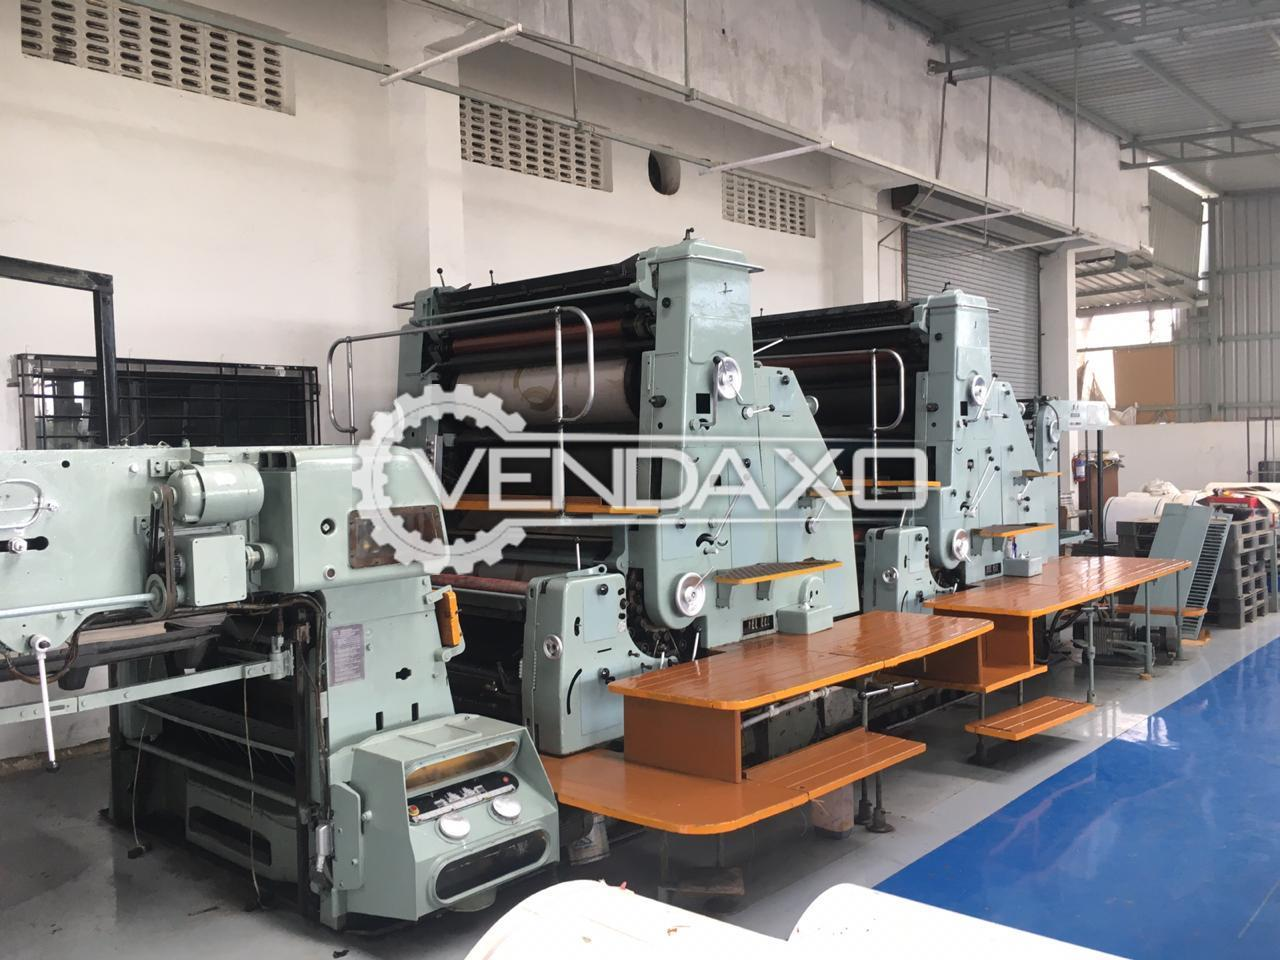 Man Roland RVU6 Offset Printing Machine - 40 x 56 Inch, 4 Color